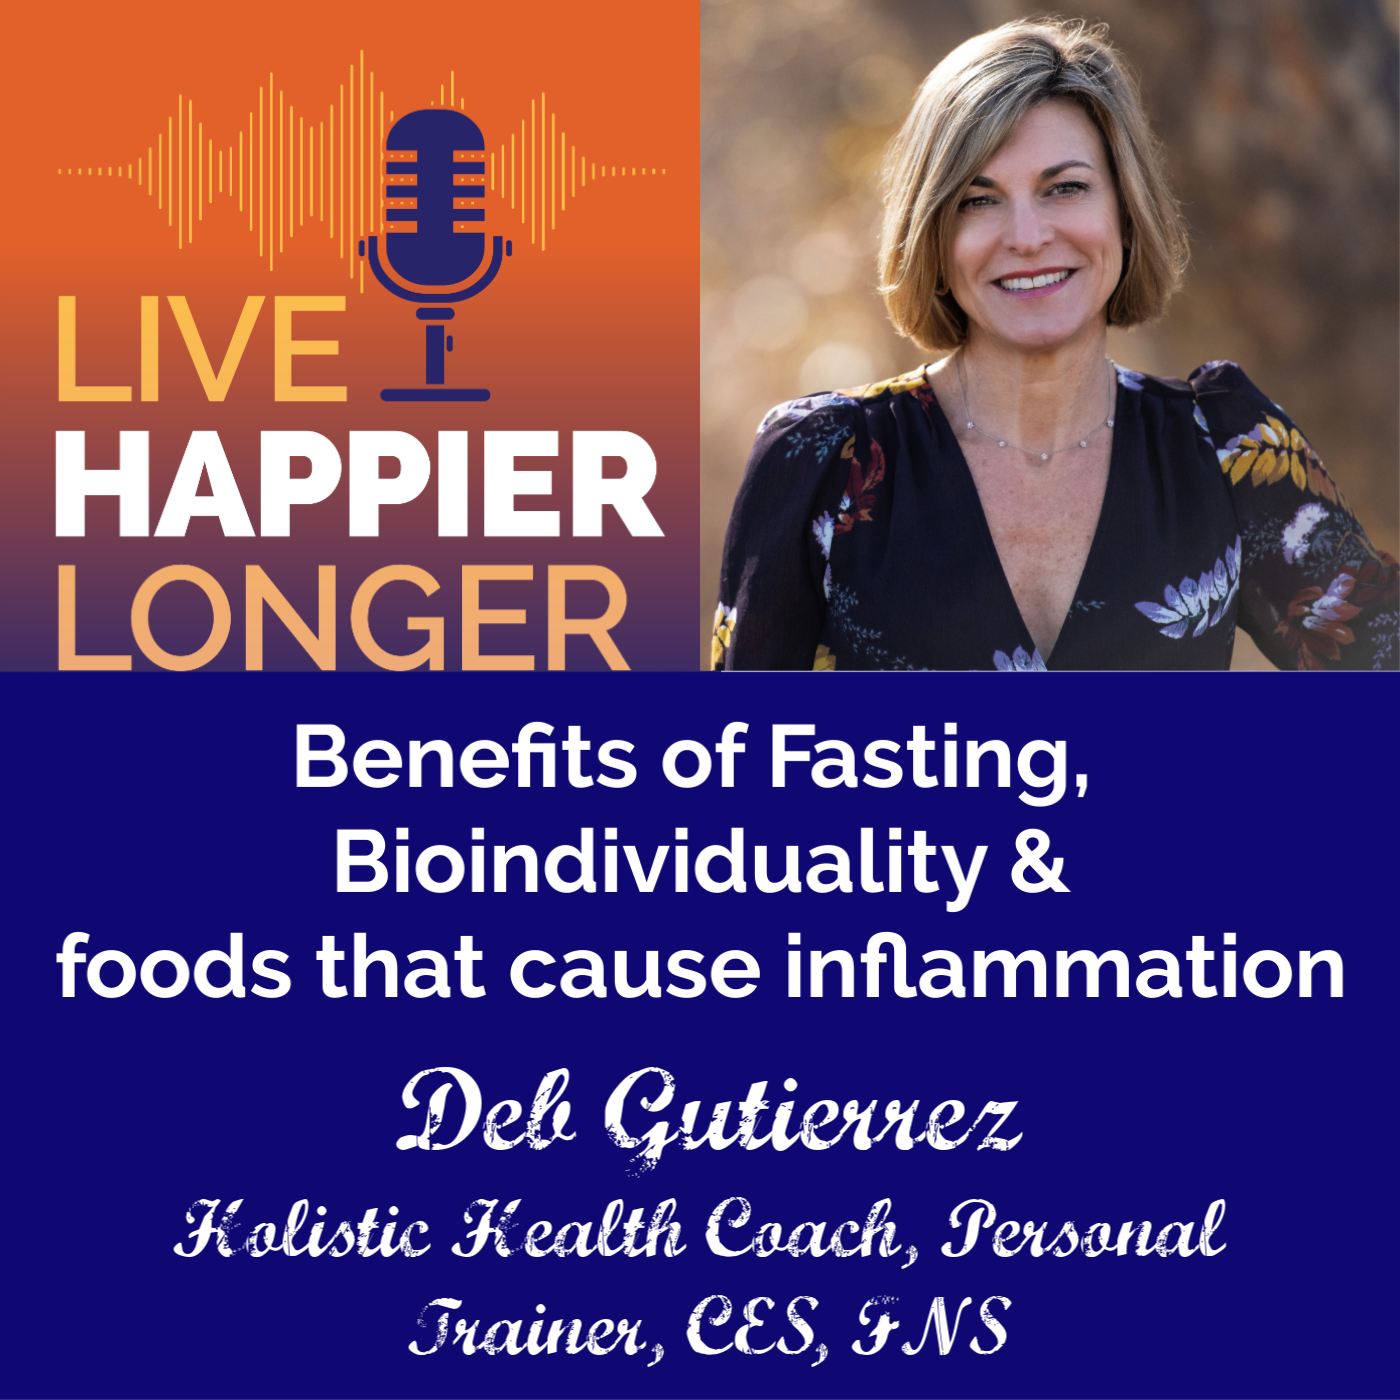 Benefits of Intermittent Fasting, Bioindividuality & foods that cause Inflammaton